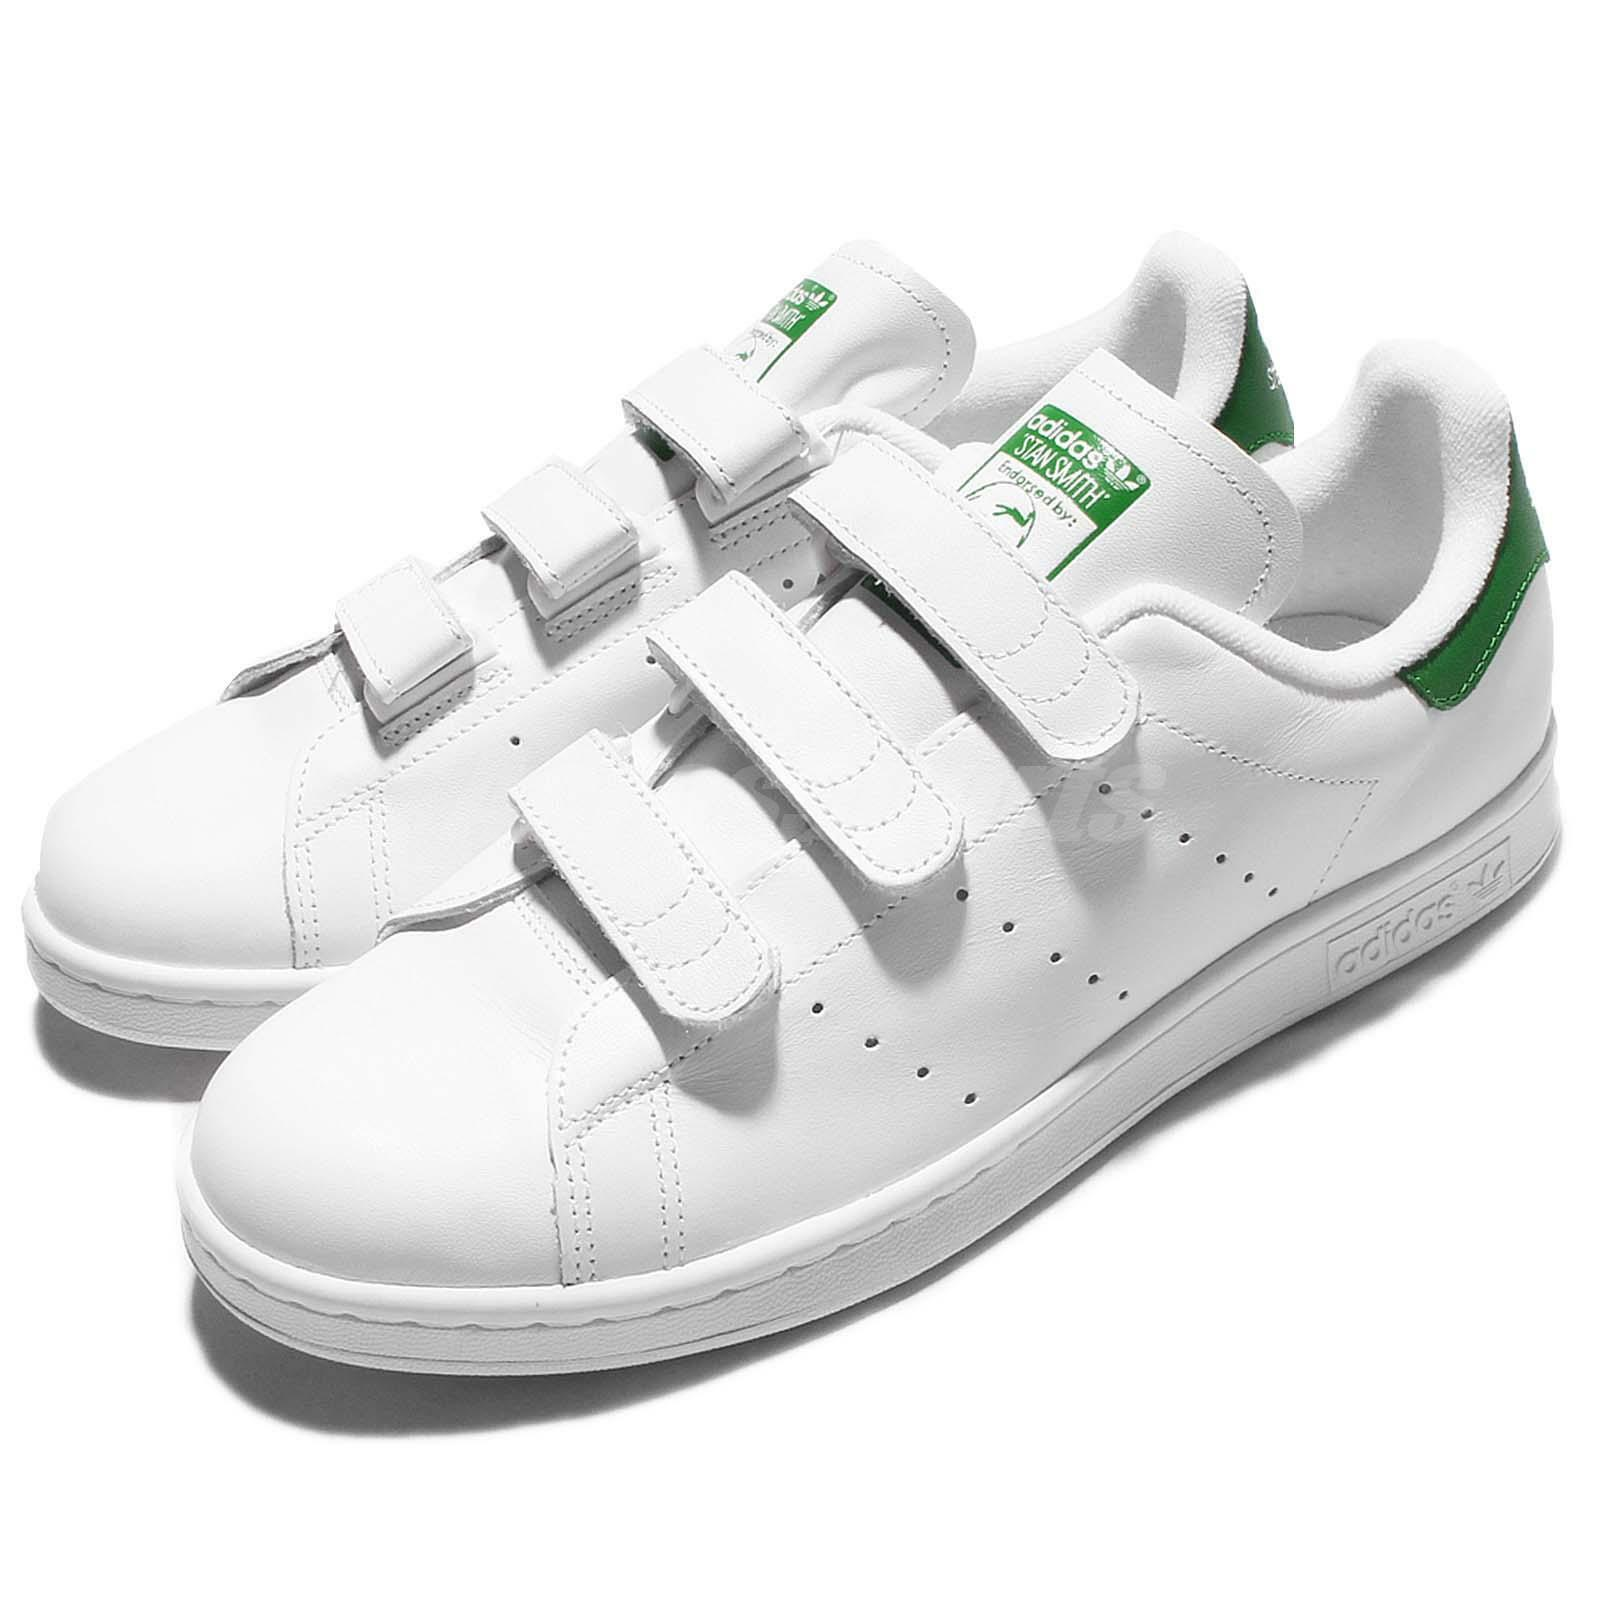 adidas Originals Stan Smith CF Blanc Vert Homme Srap Chaussures Sneakers S75187